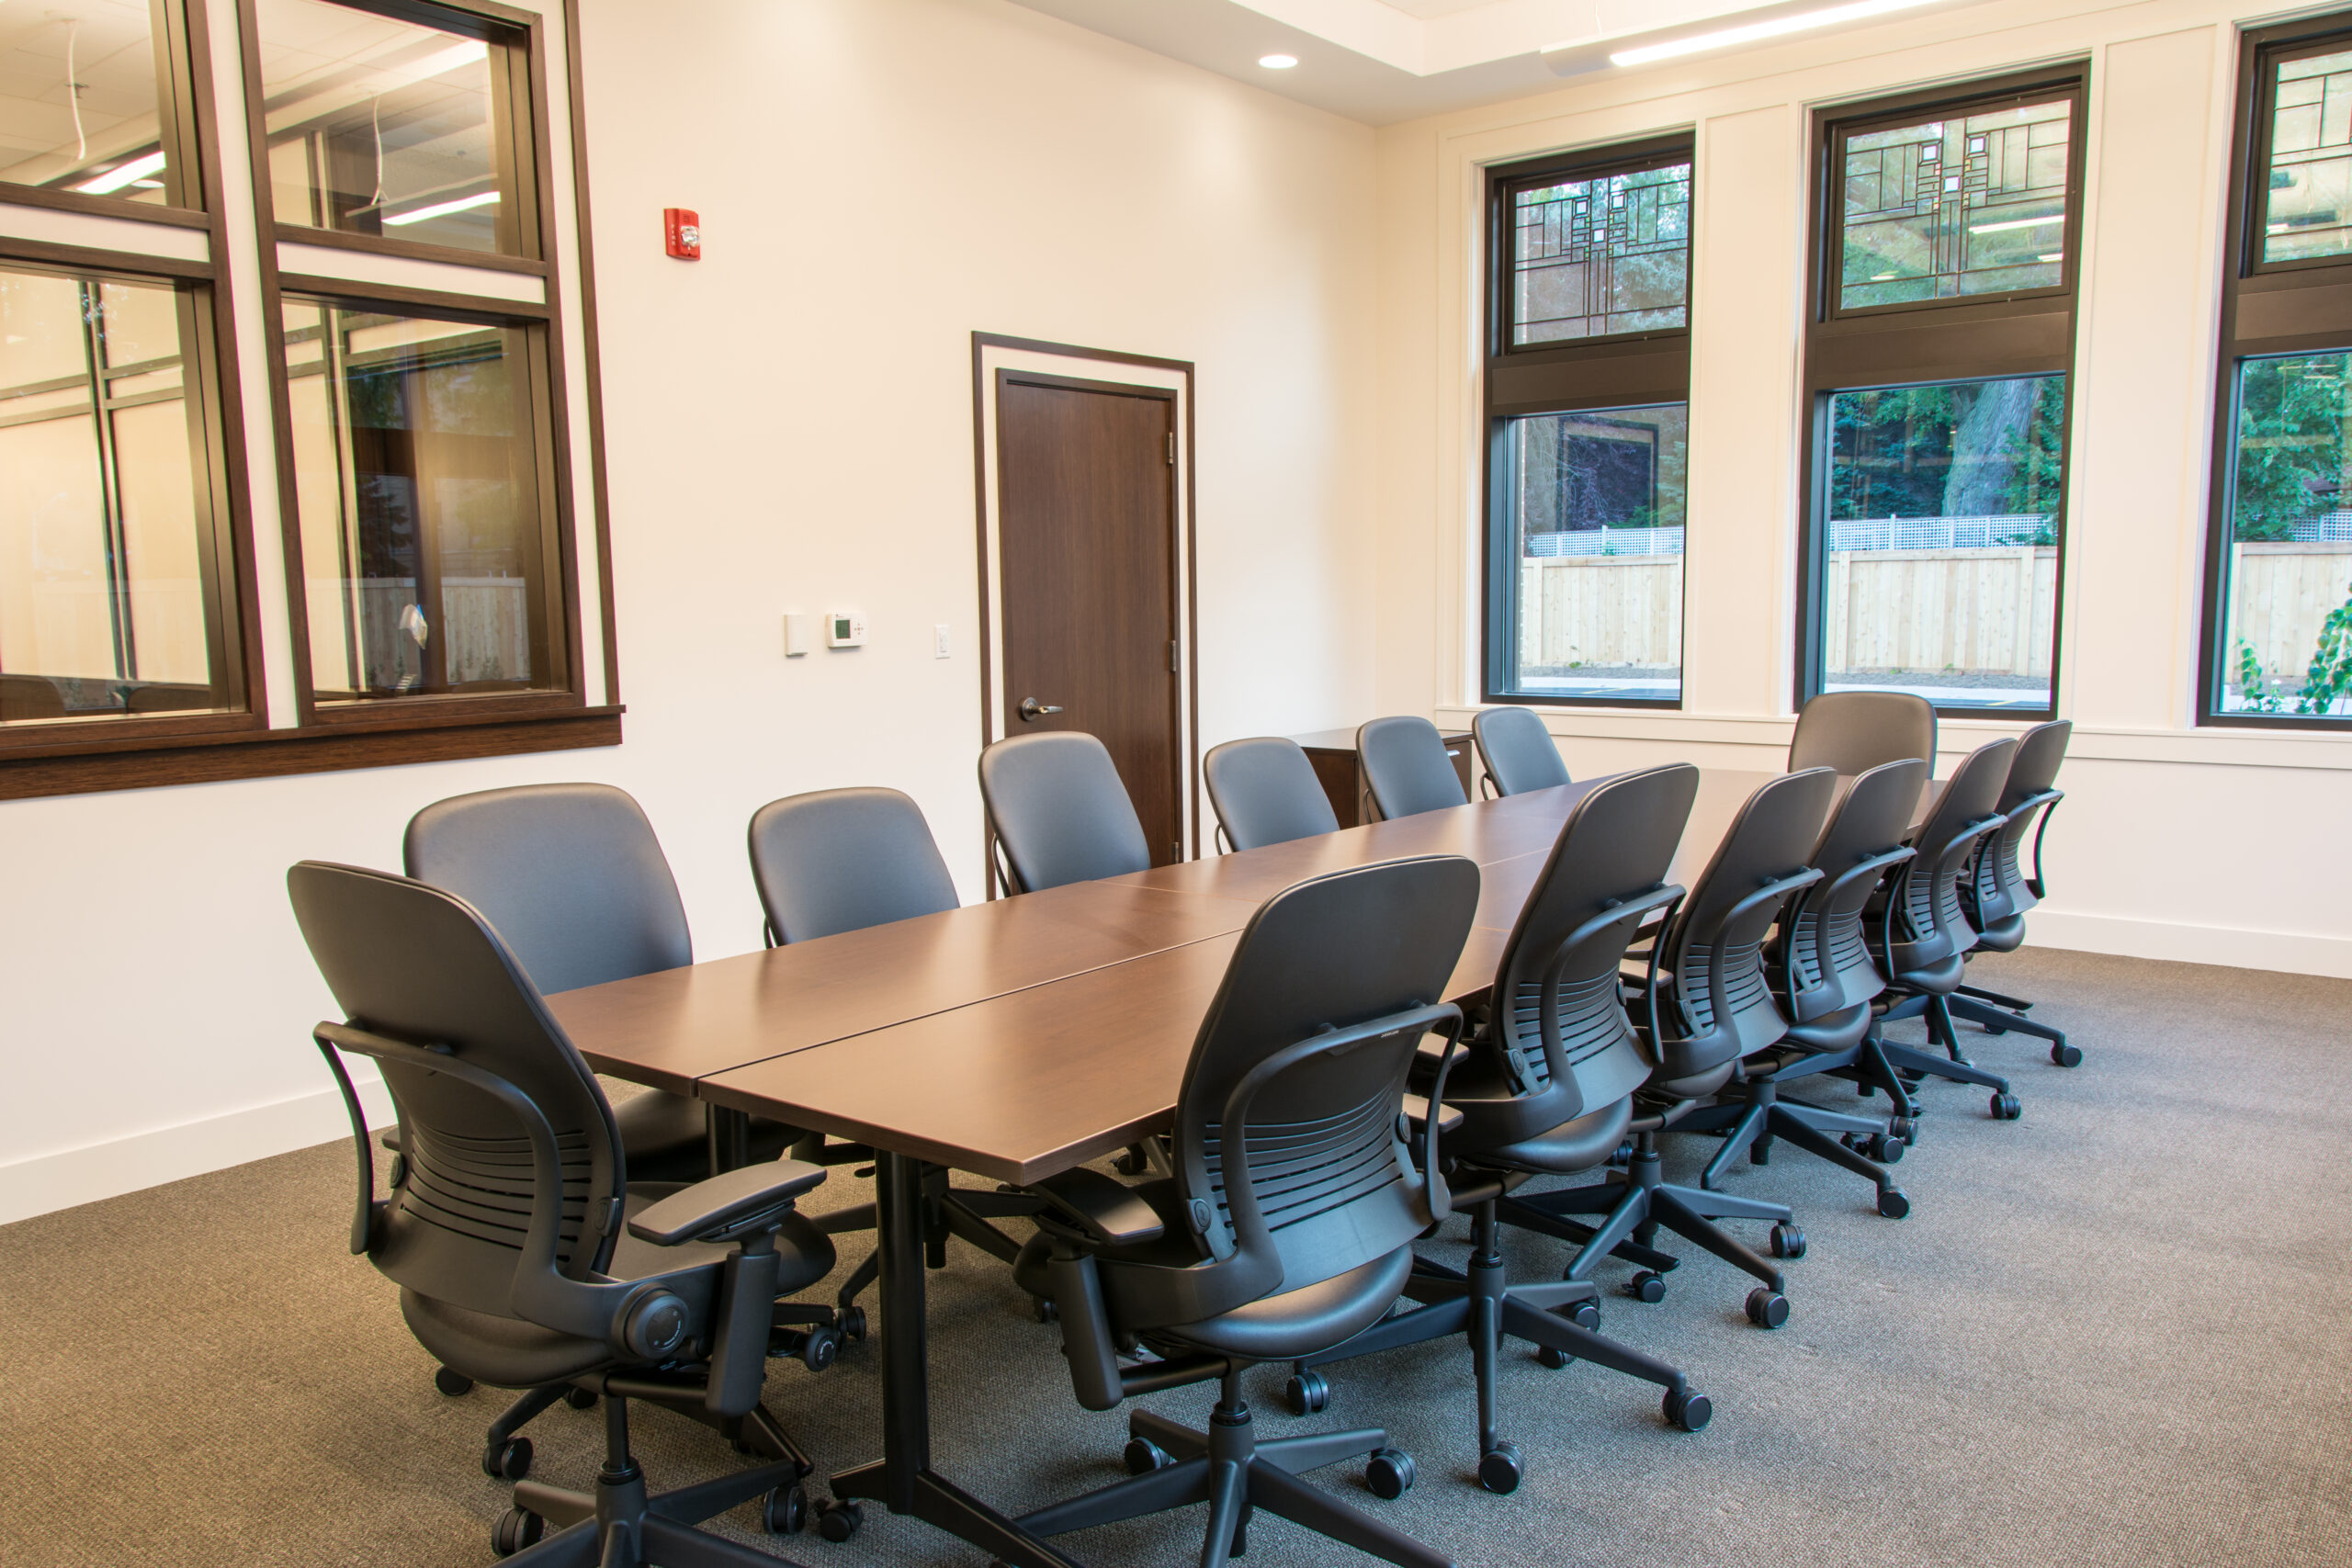 Conference room at Wintrust Bank Mayfair.